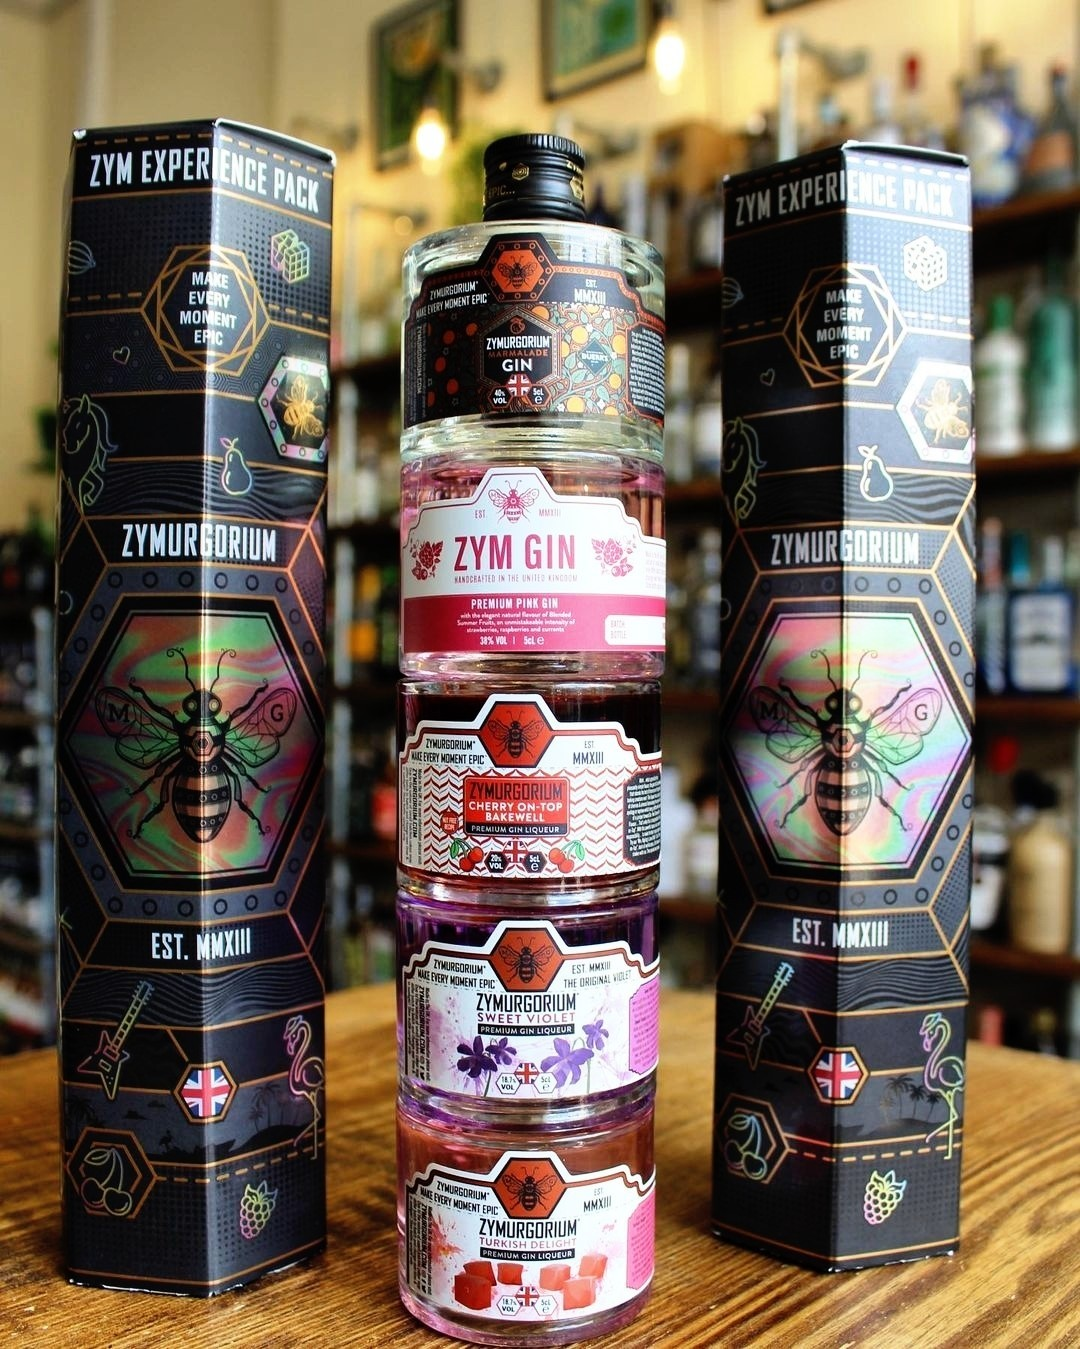 Manchester spirit company Zymurgorium is selling gin by the yard, The Manc